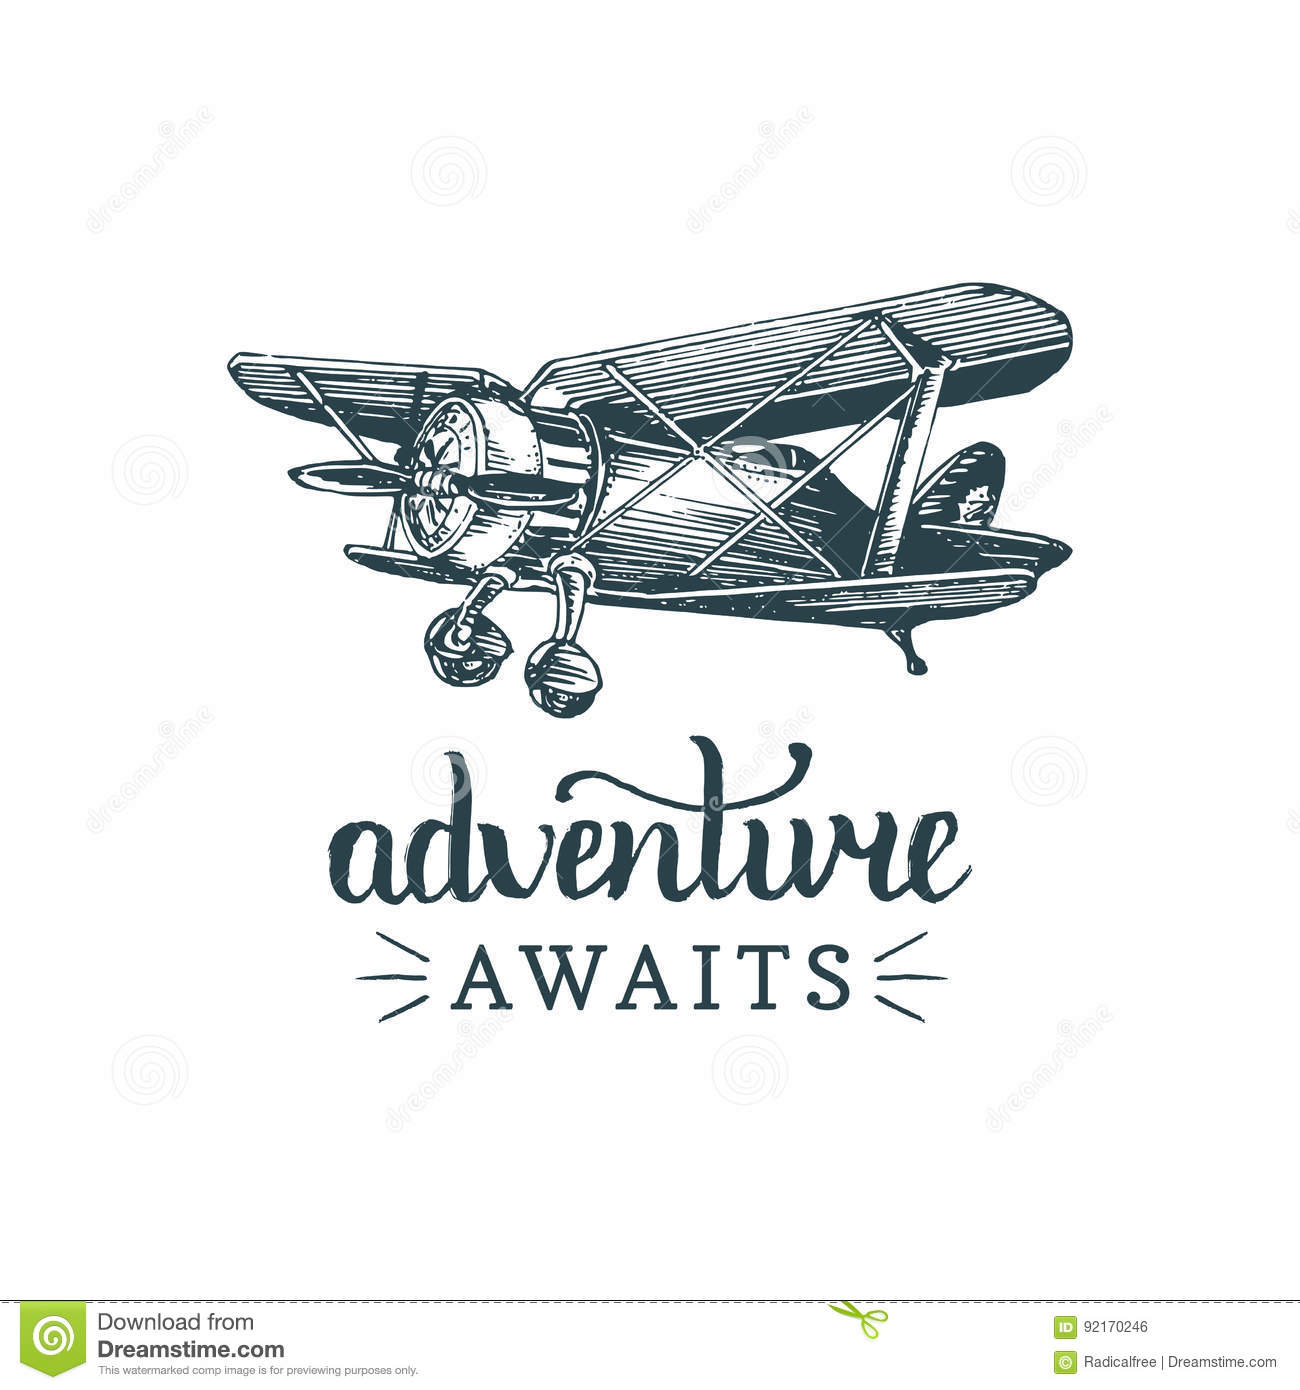 adventure awaits motivational quote vintage retro airplane logo